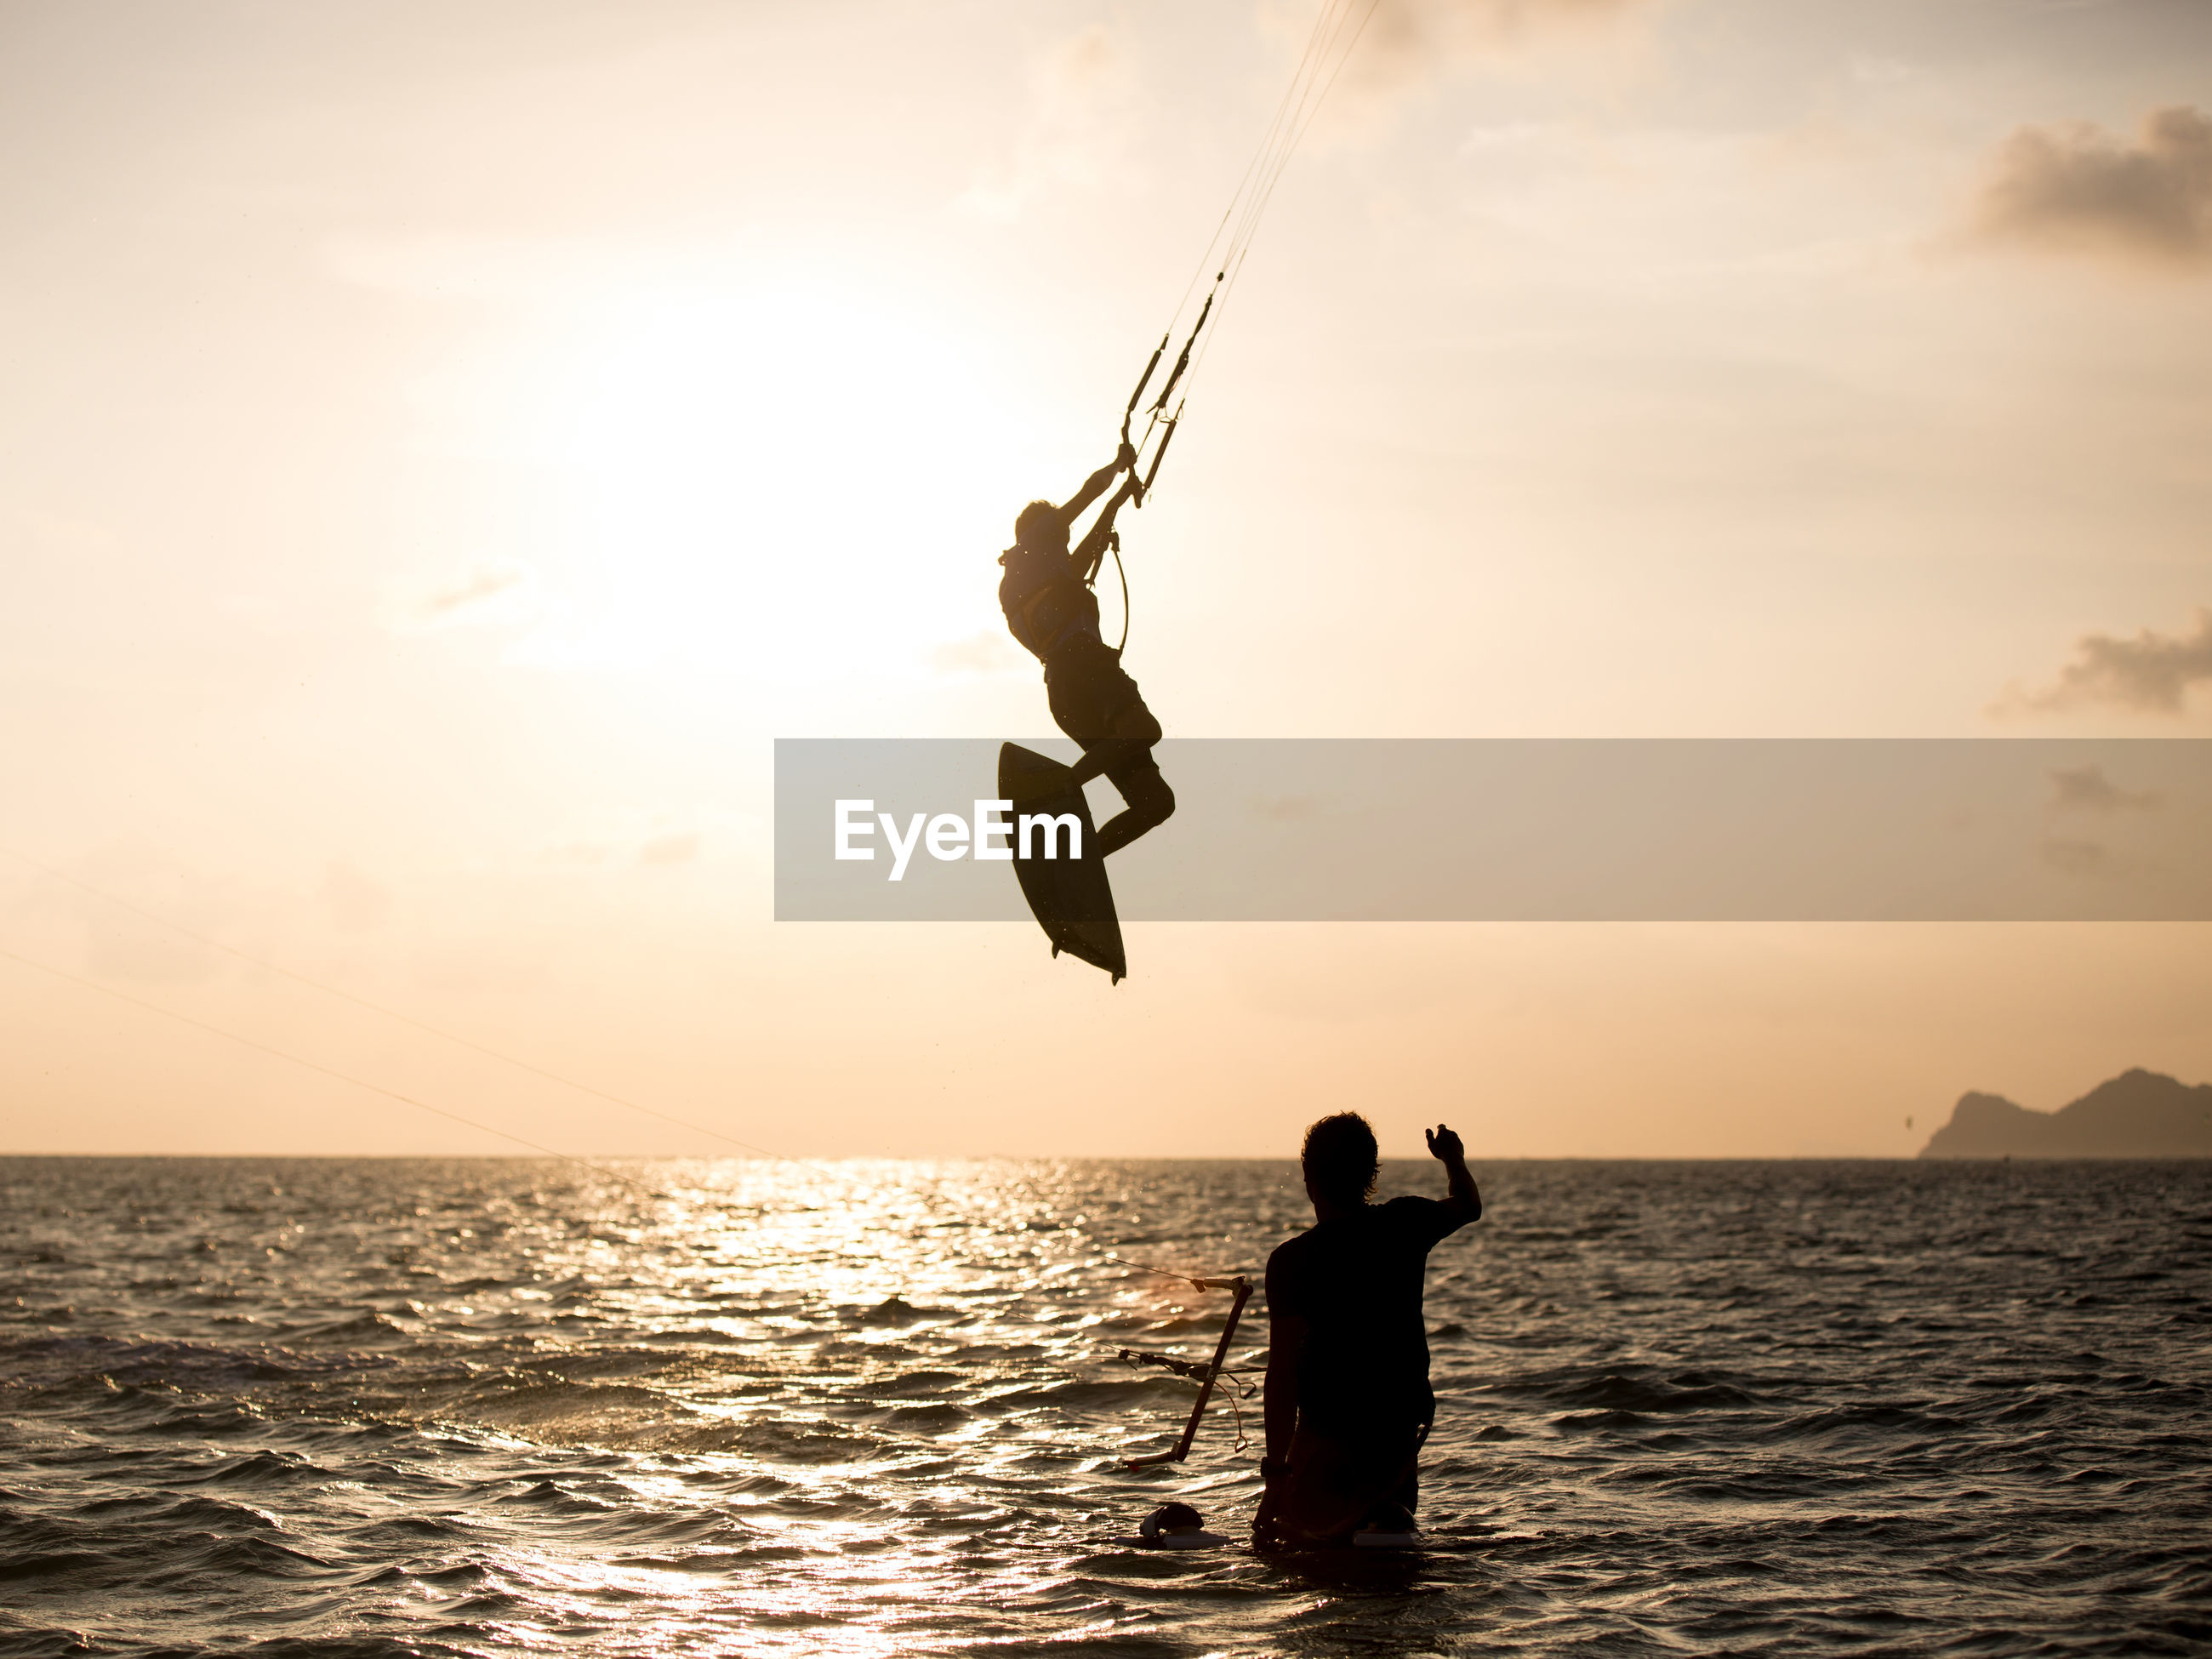 View of silhouette kite surfing in the ocean